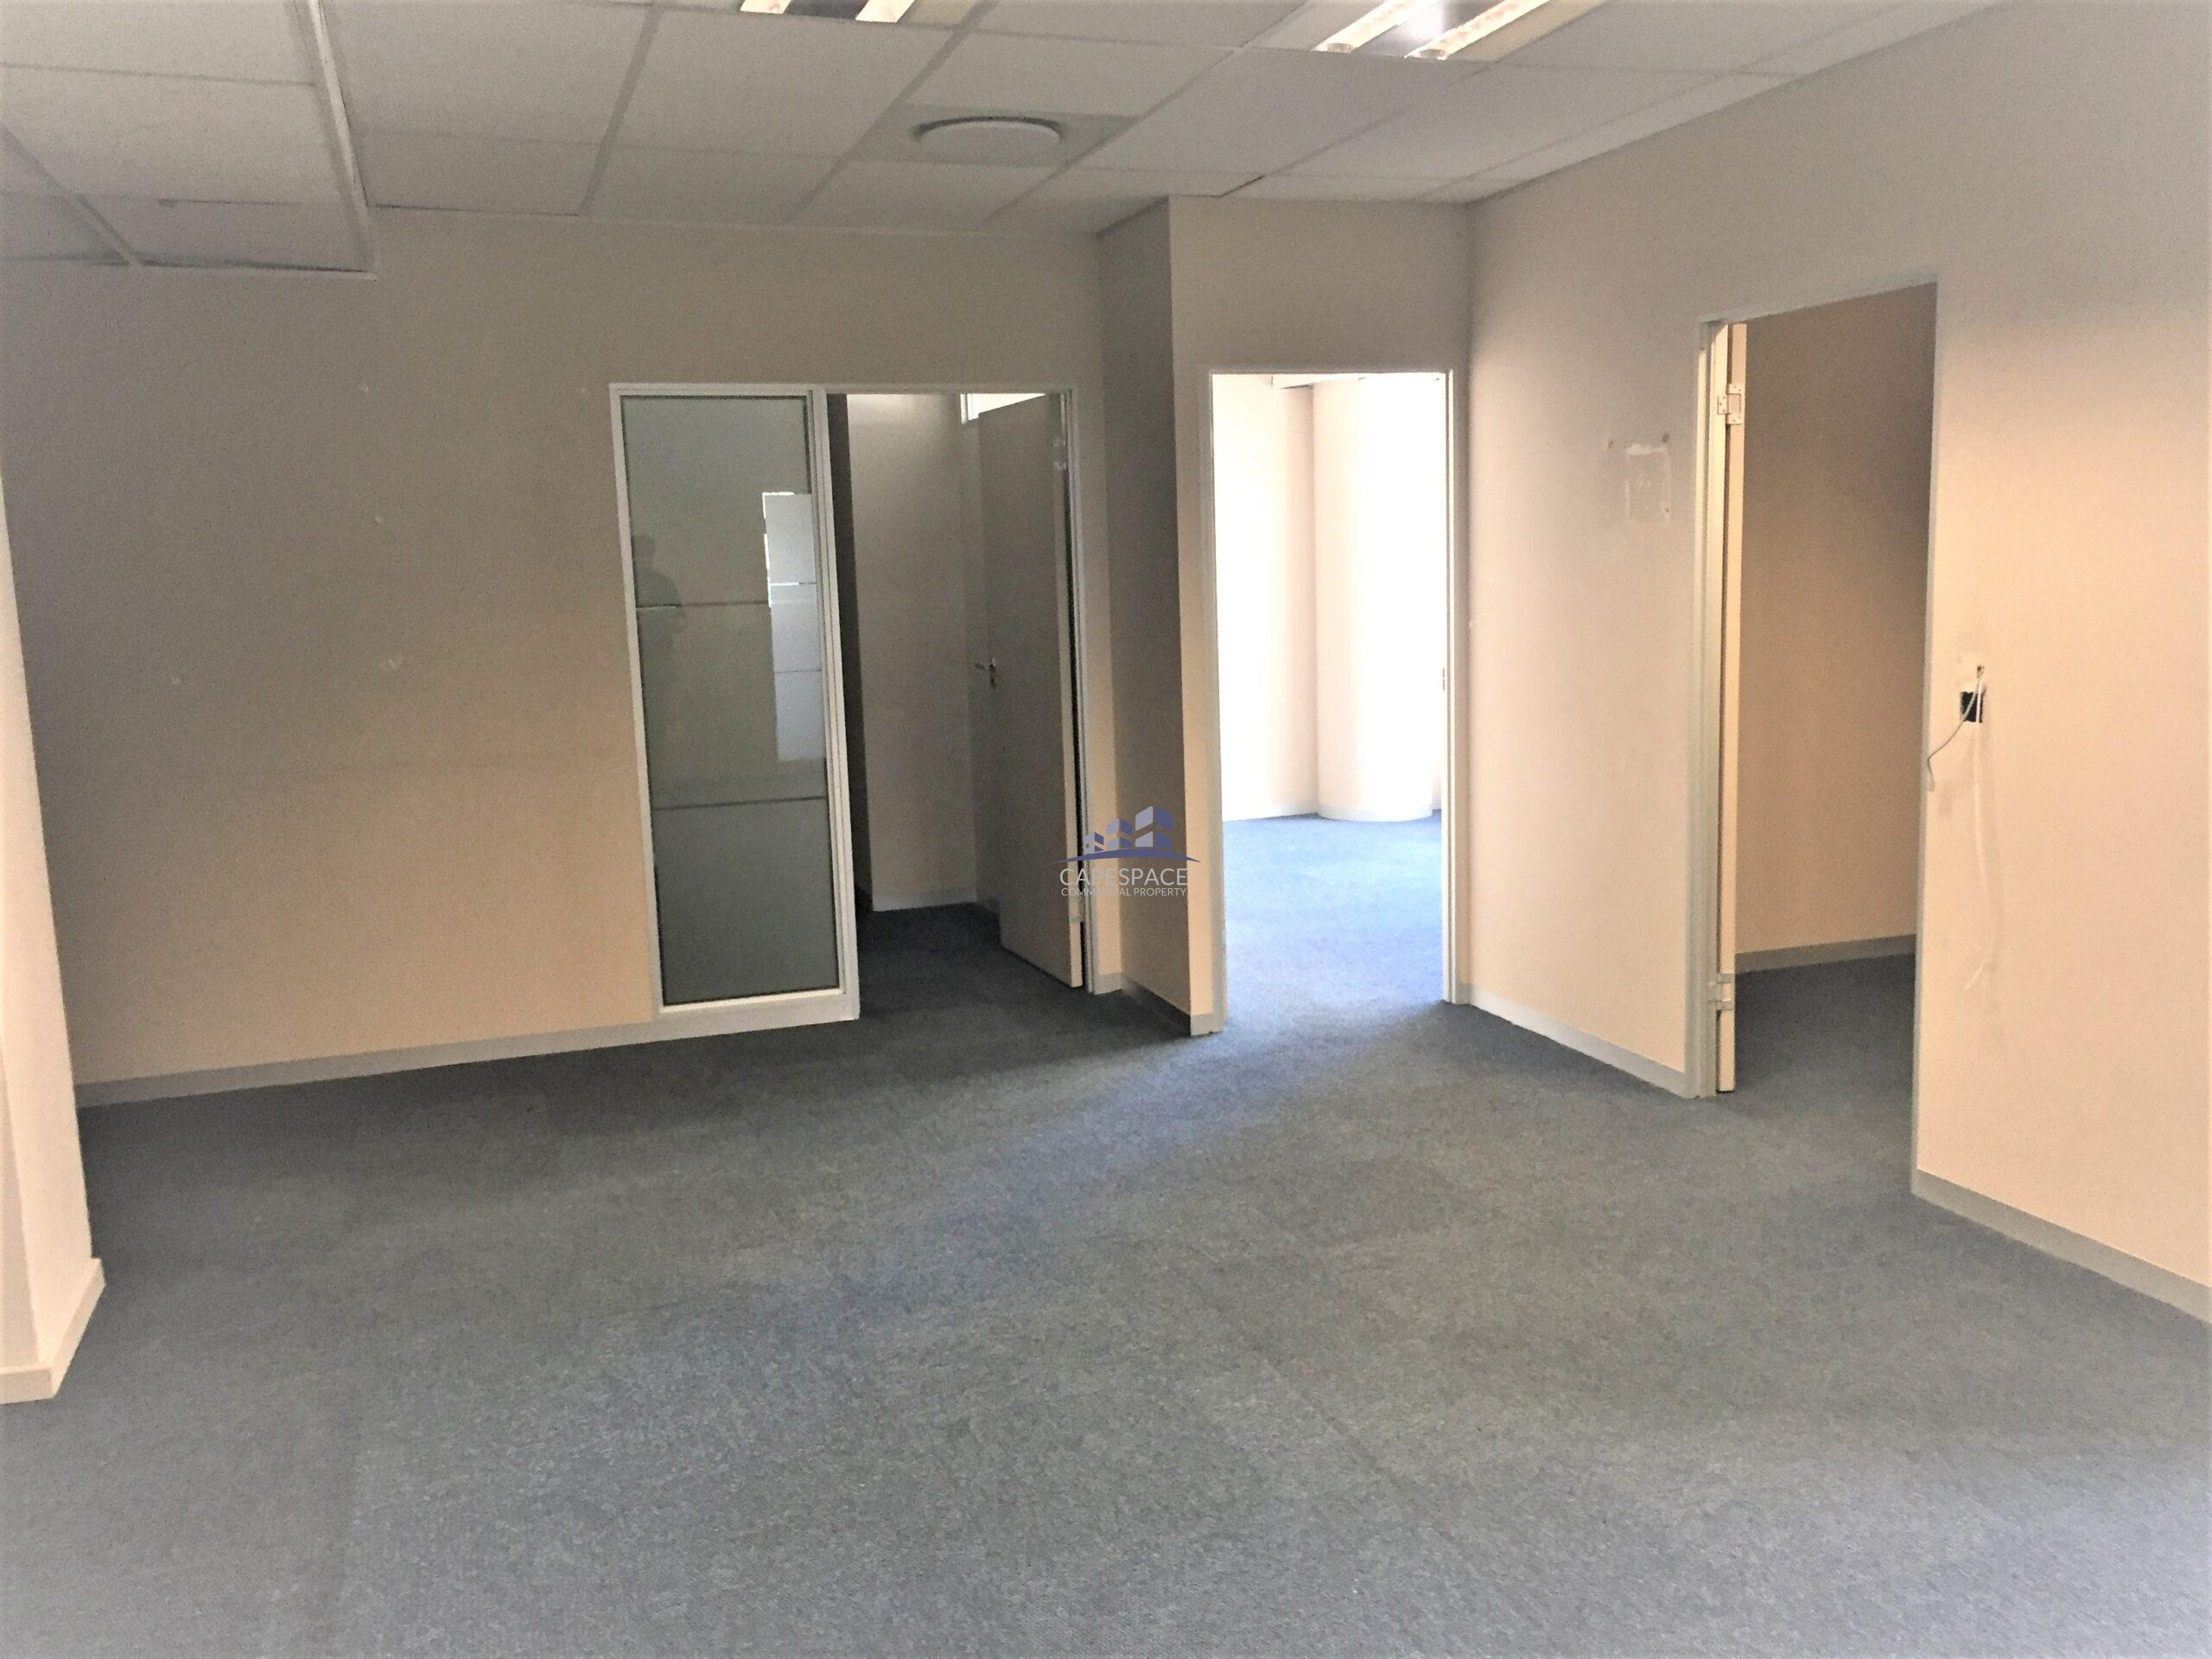 341 m² Office Space to Rent Cape Town CBD I 30 Waterkant Street